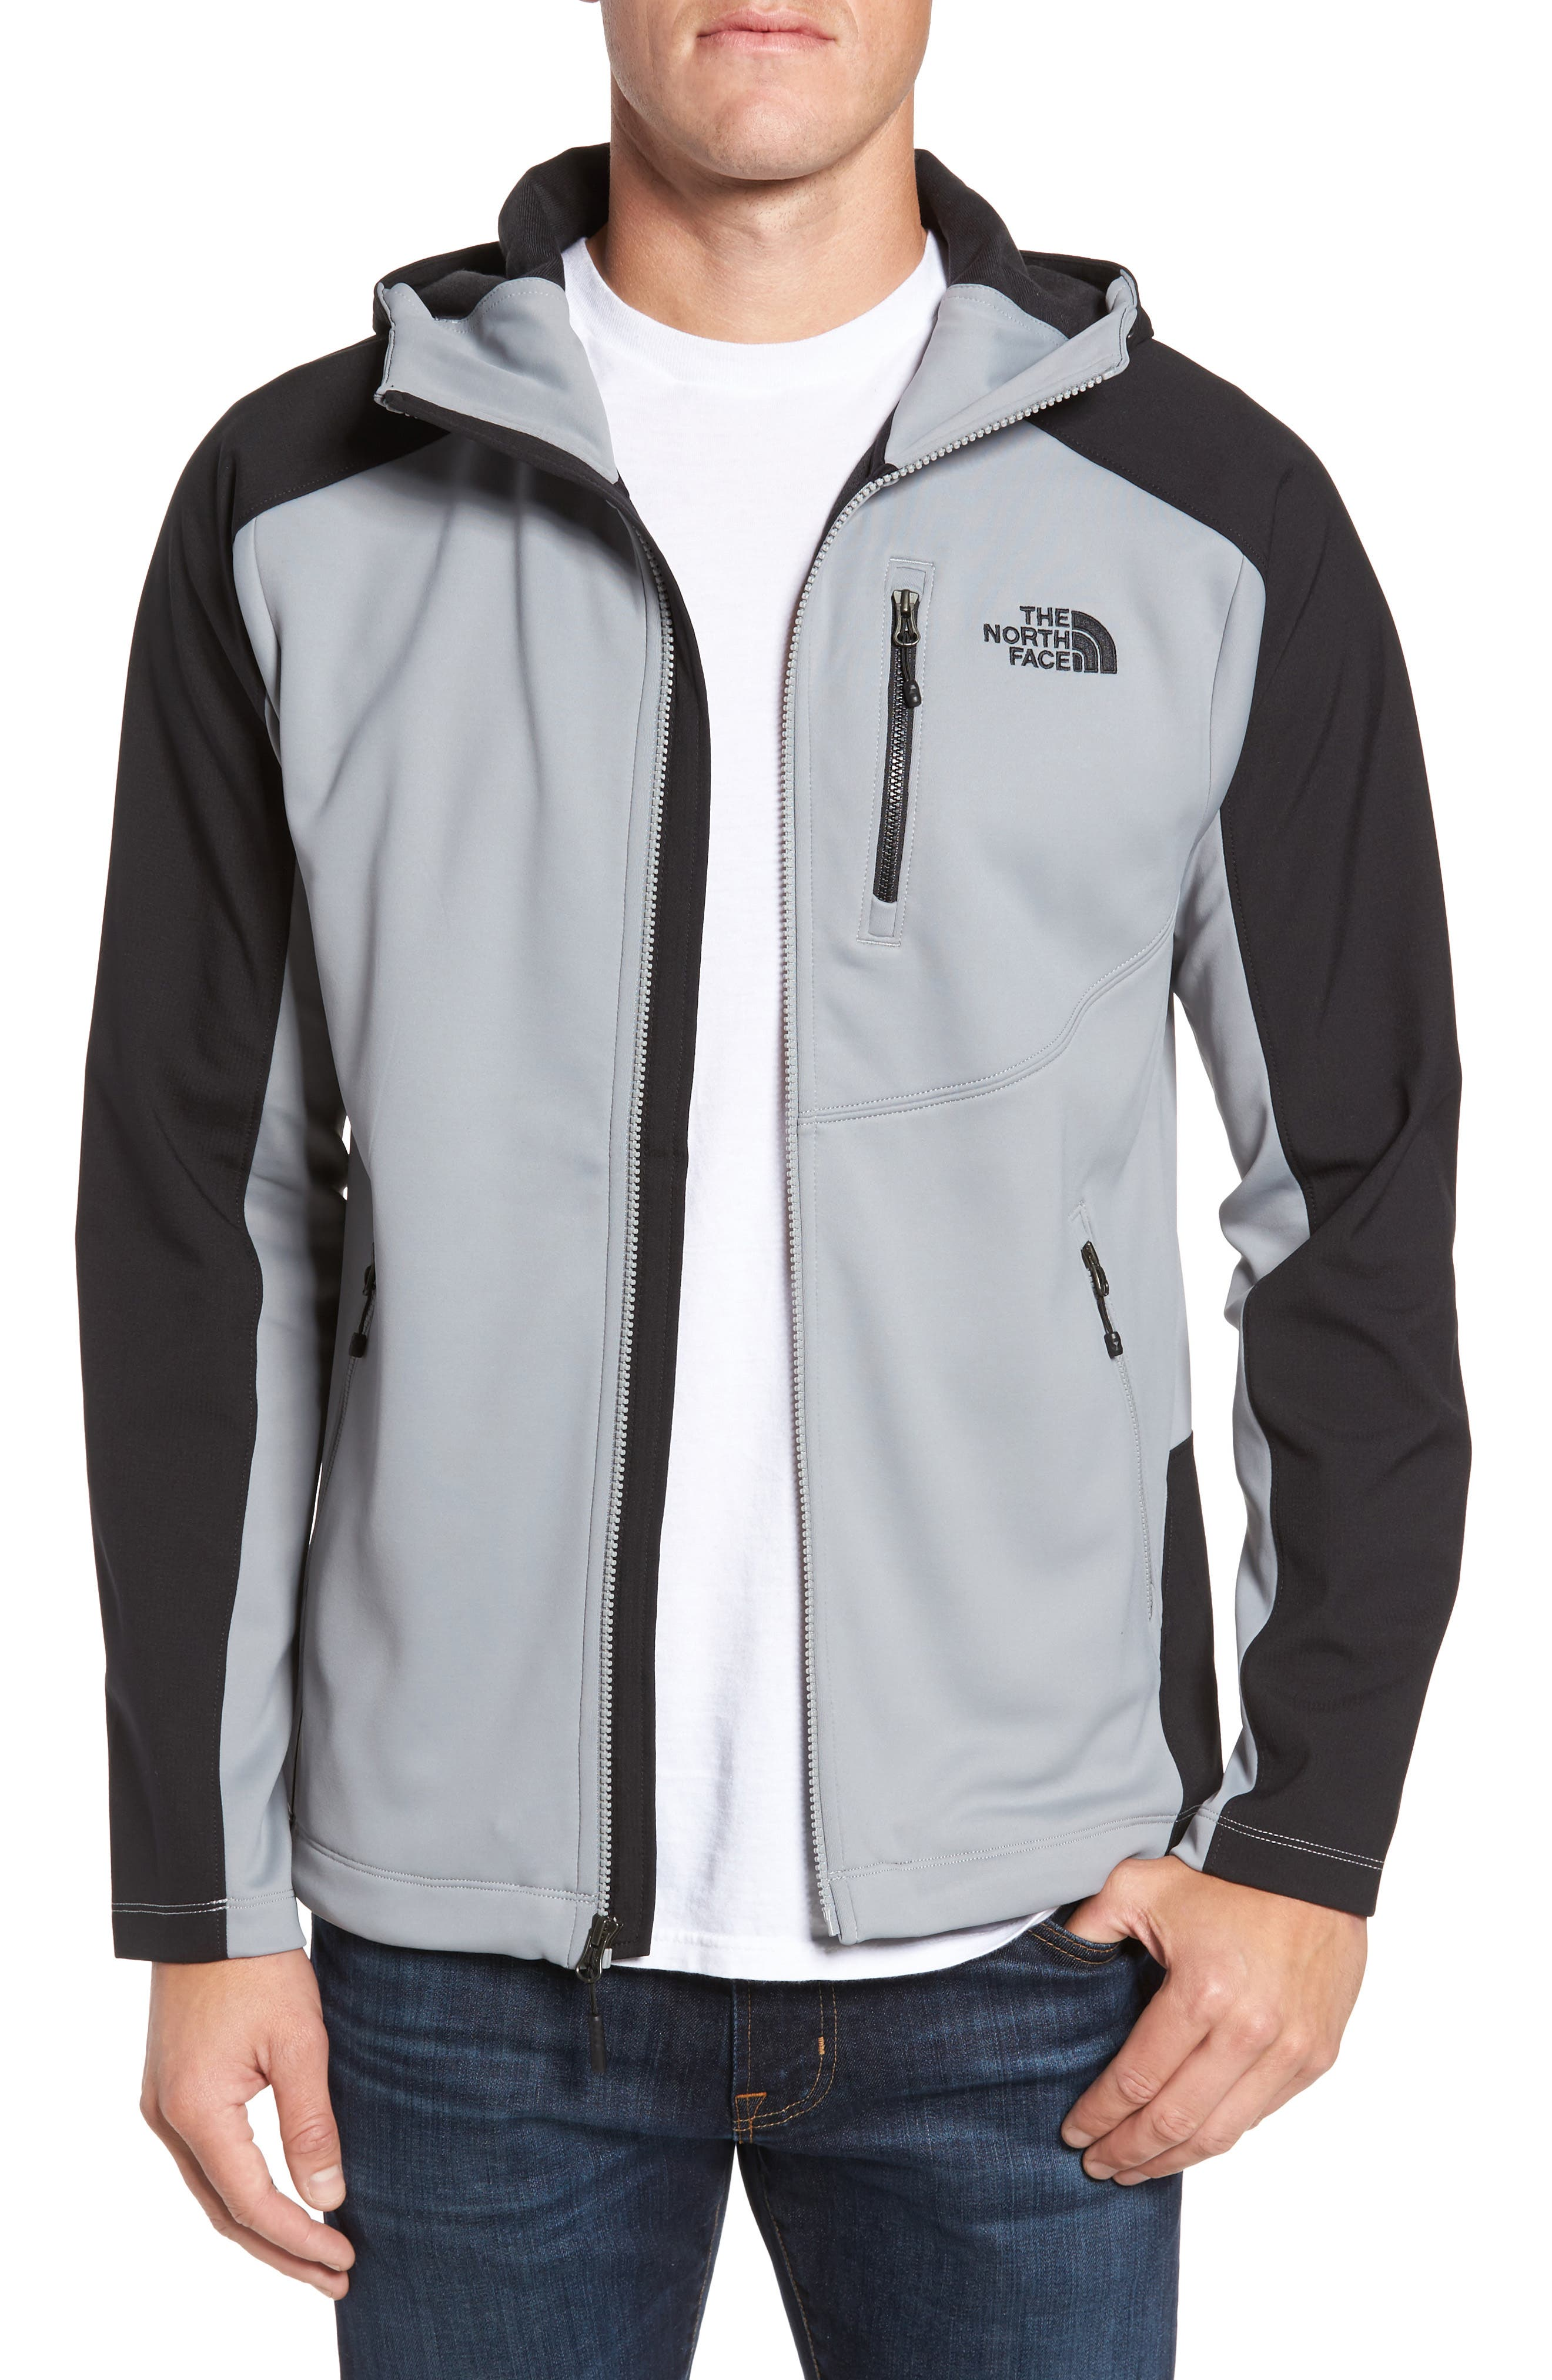 The North Face Tenacious Water Repellent Hybrid Jacket